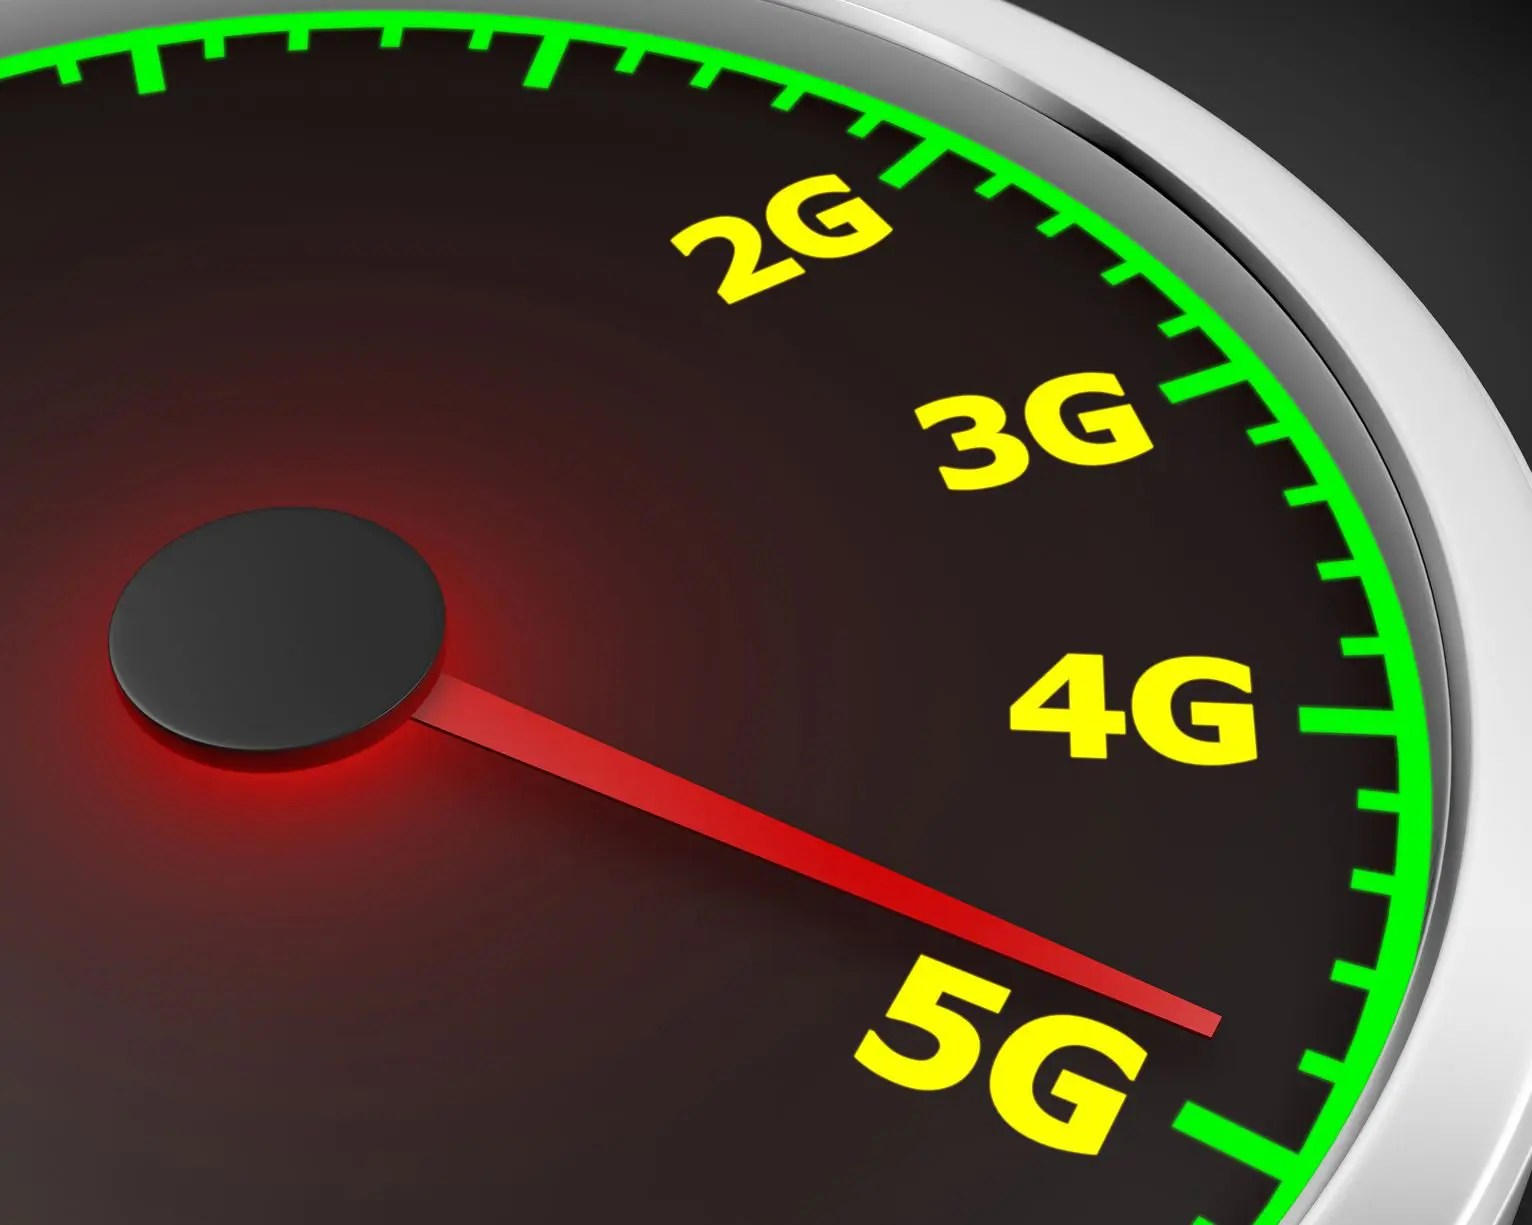 KT, Qualcomm, Samsung achieve 5G NR interoperability in mobile trials